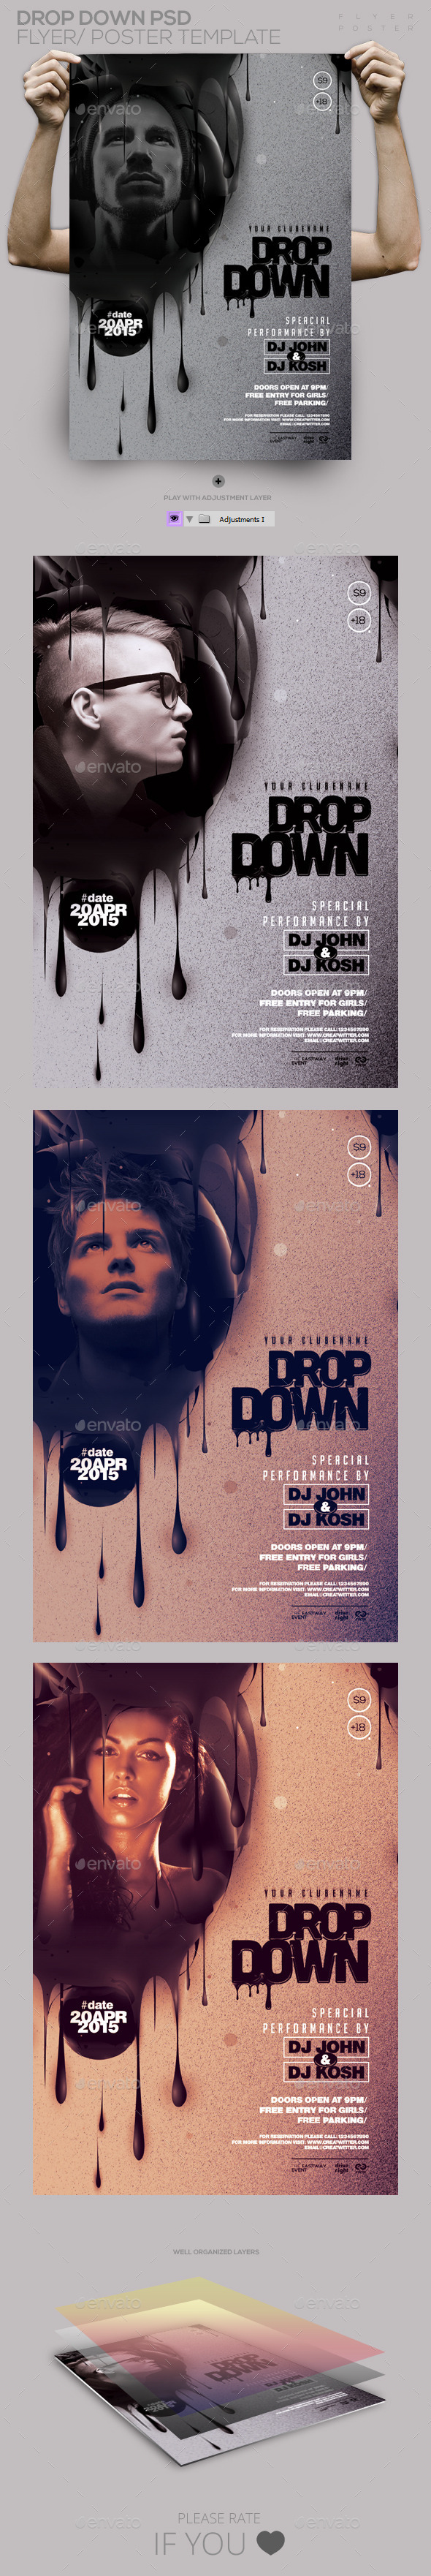 GraphicRiver Guest Dj Drop Down PSD Flyer Poster 11305563